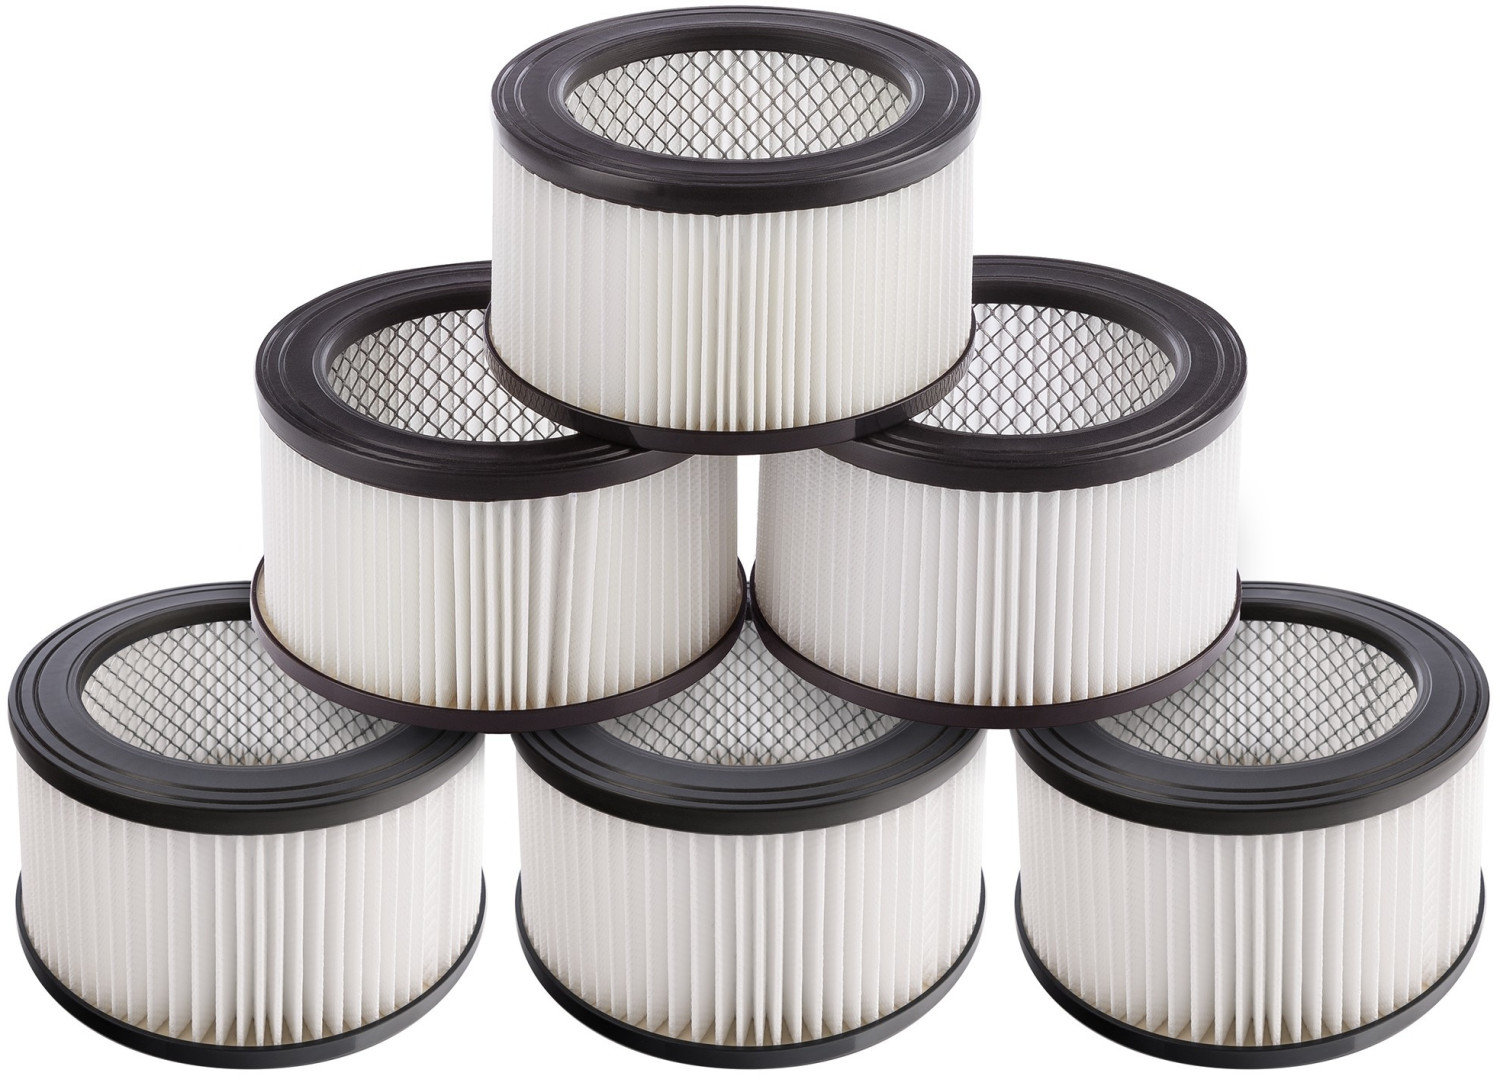 Image of Arebos 6 x Hepa filters for ash vacuums